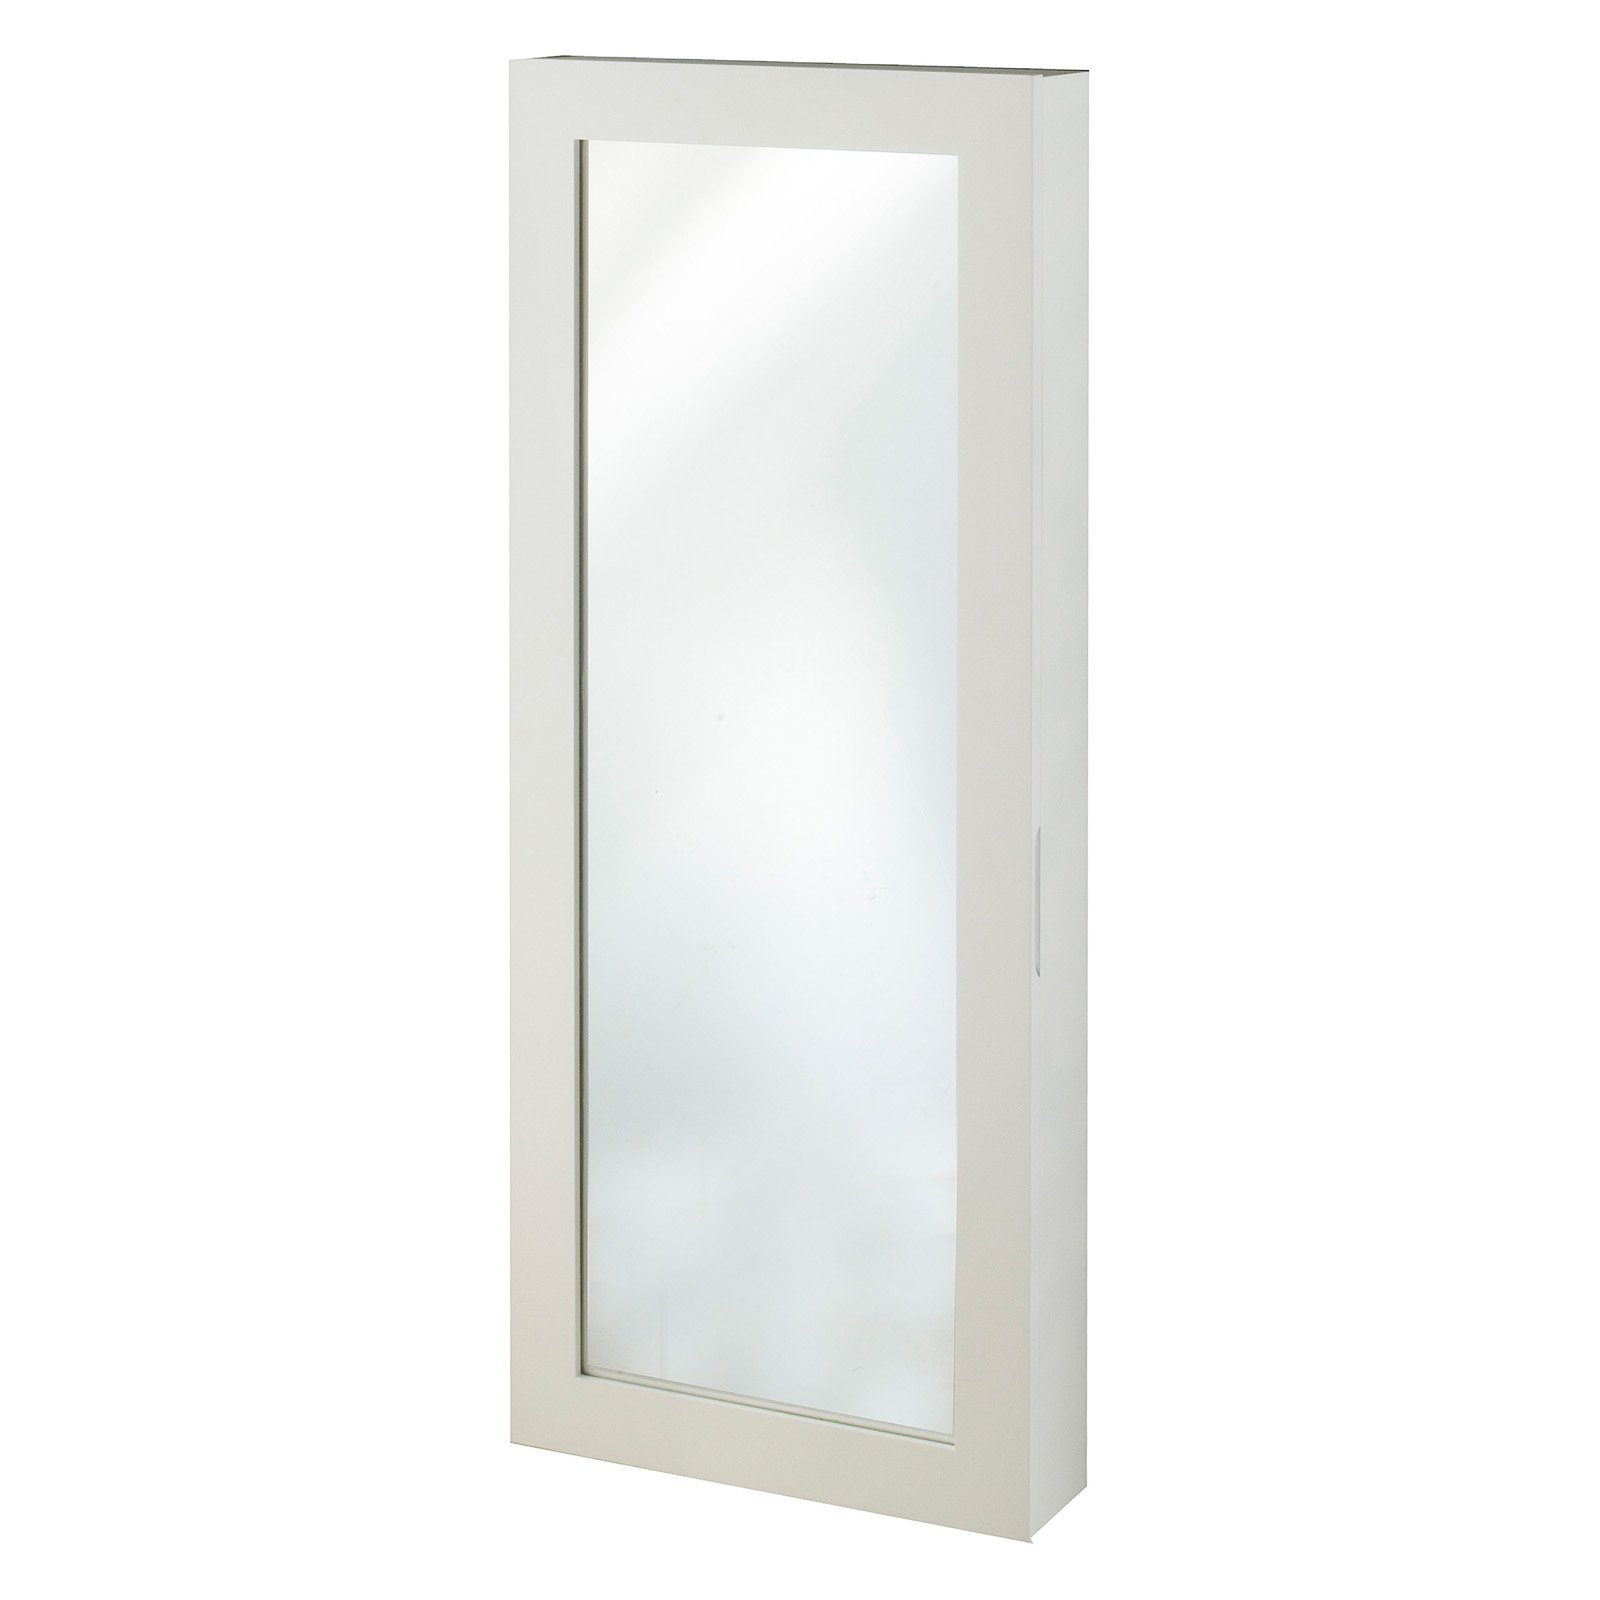 InnerSpace Space Saver Jewelry Armoire with Mirror